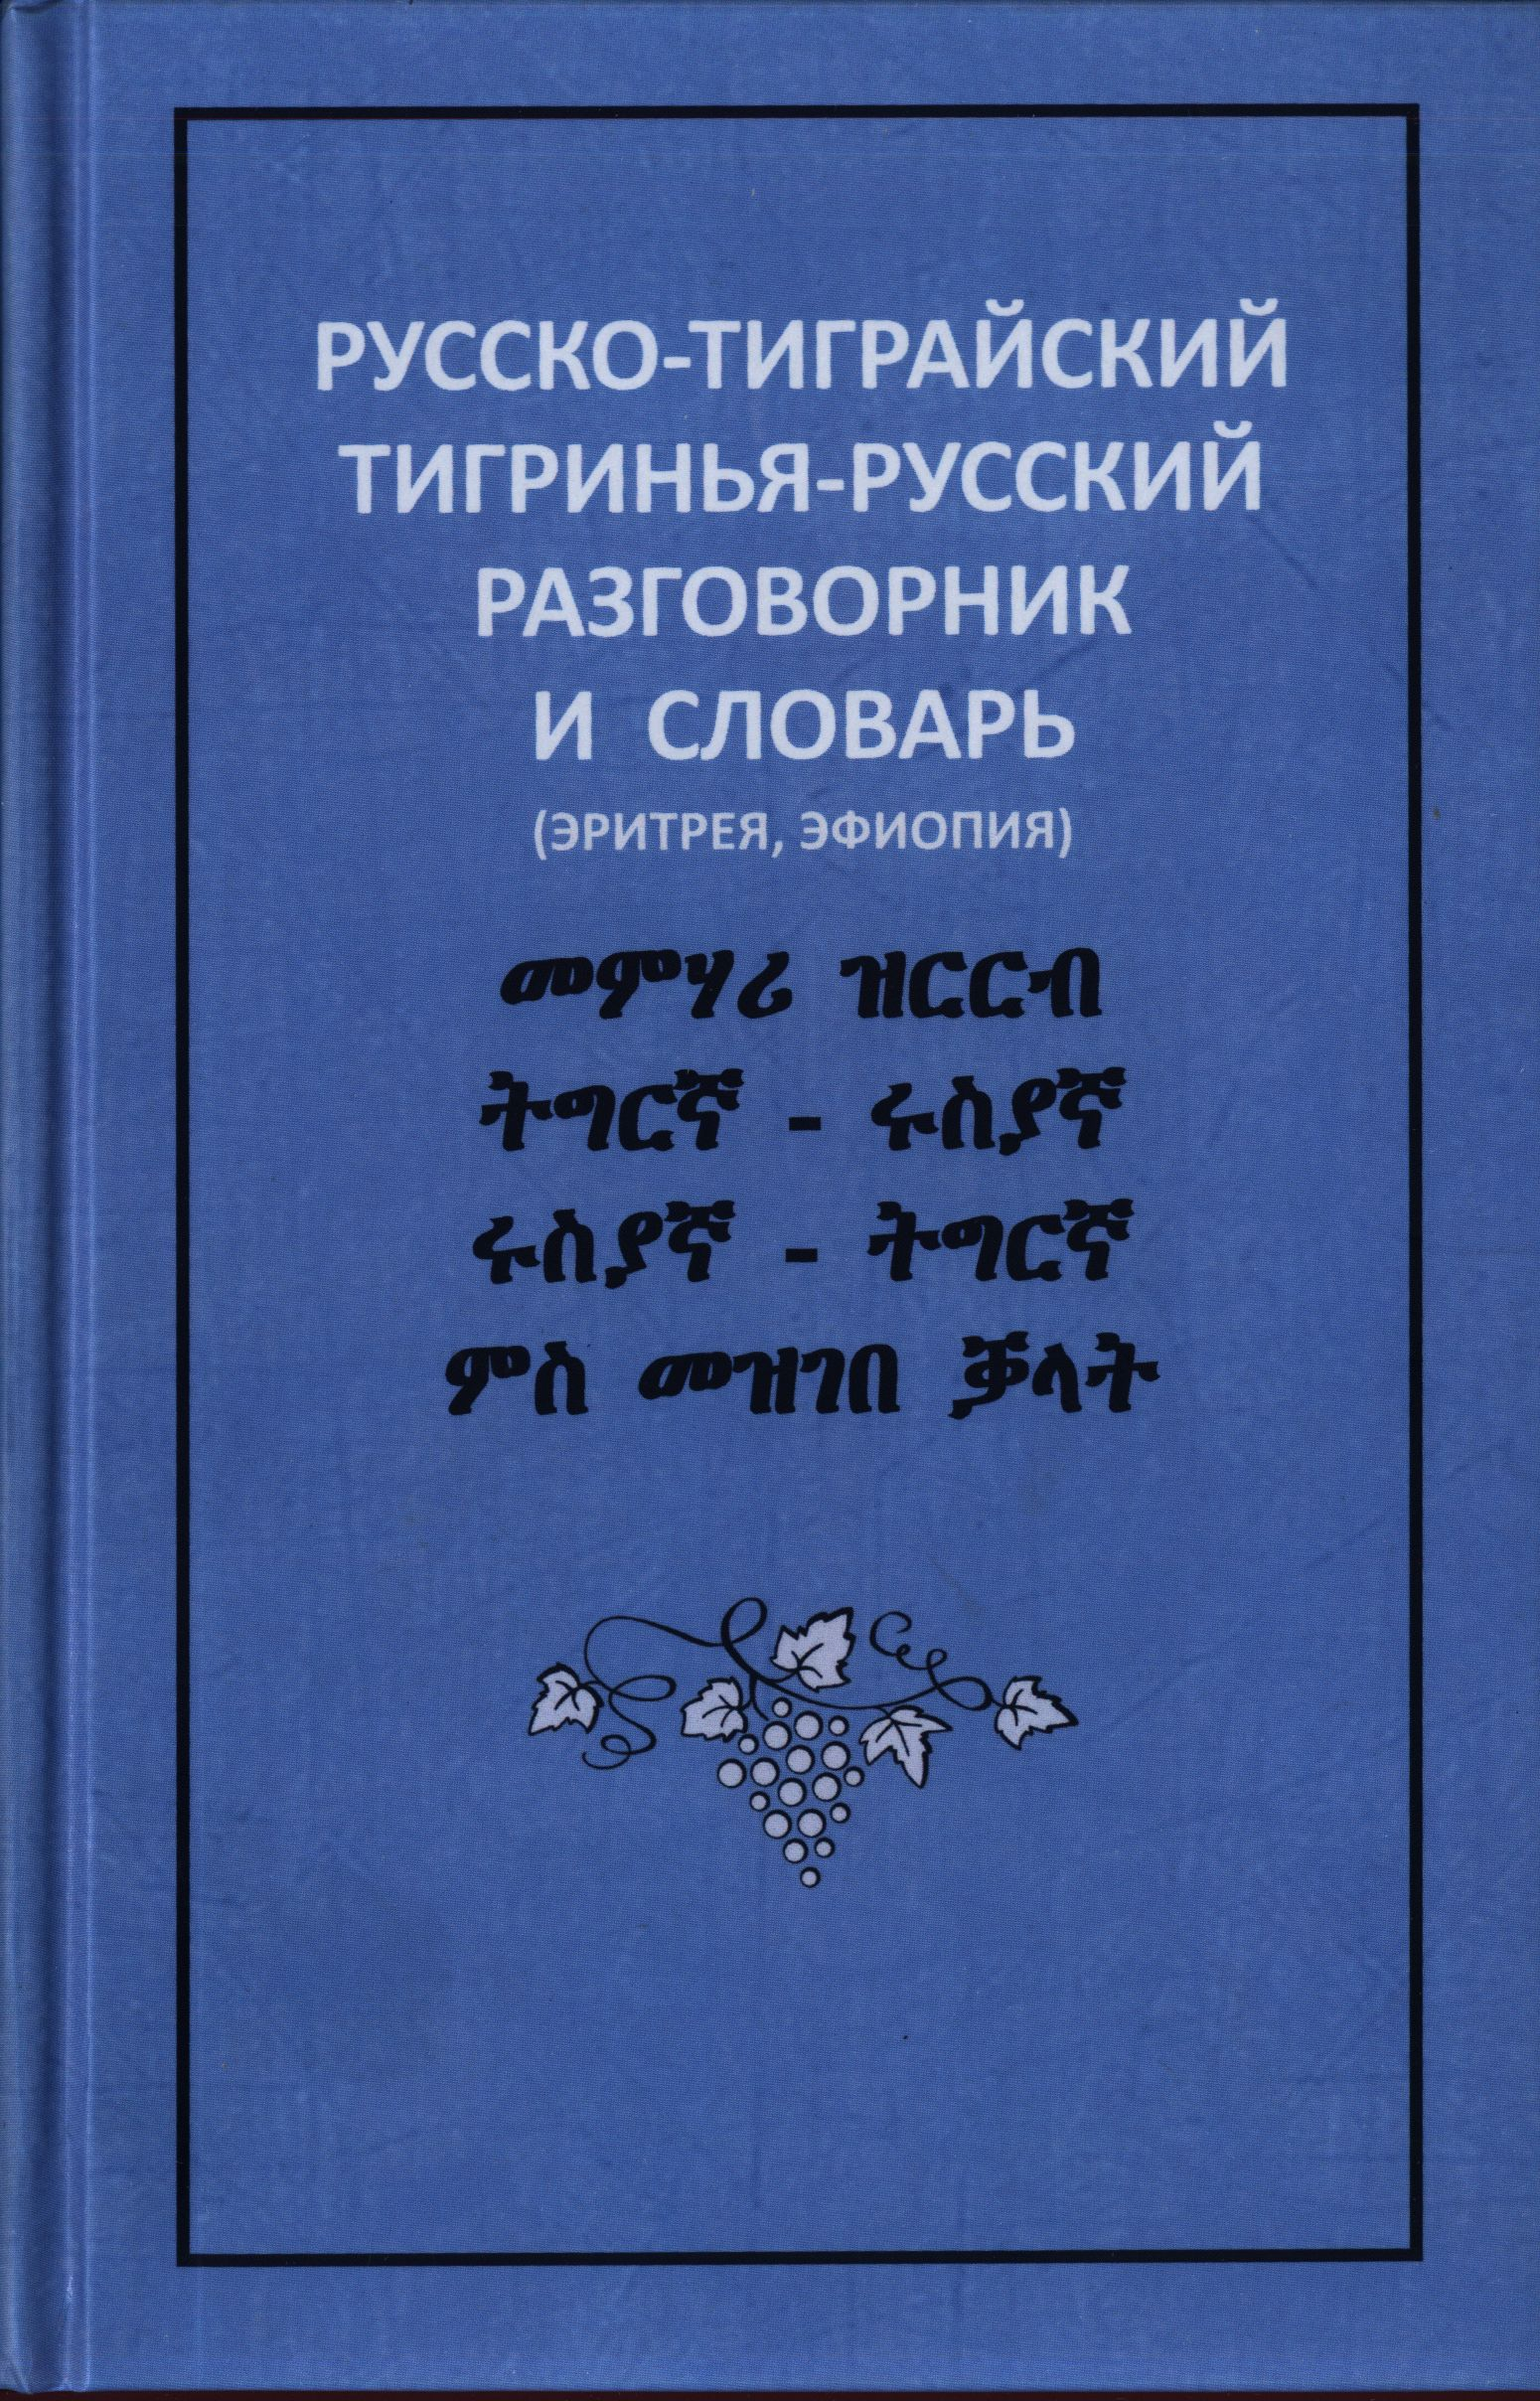 Tigrinya-Russian Russian-Tigrinya phrasebook and dictionary